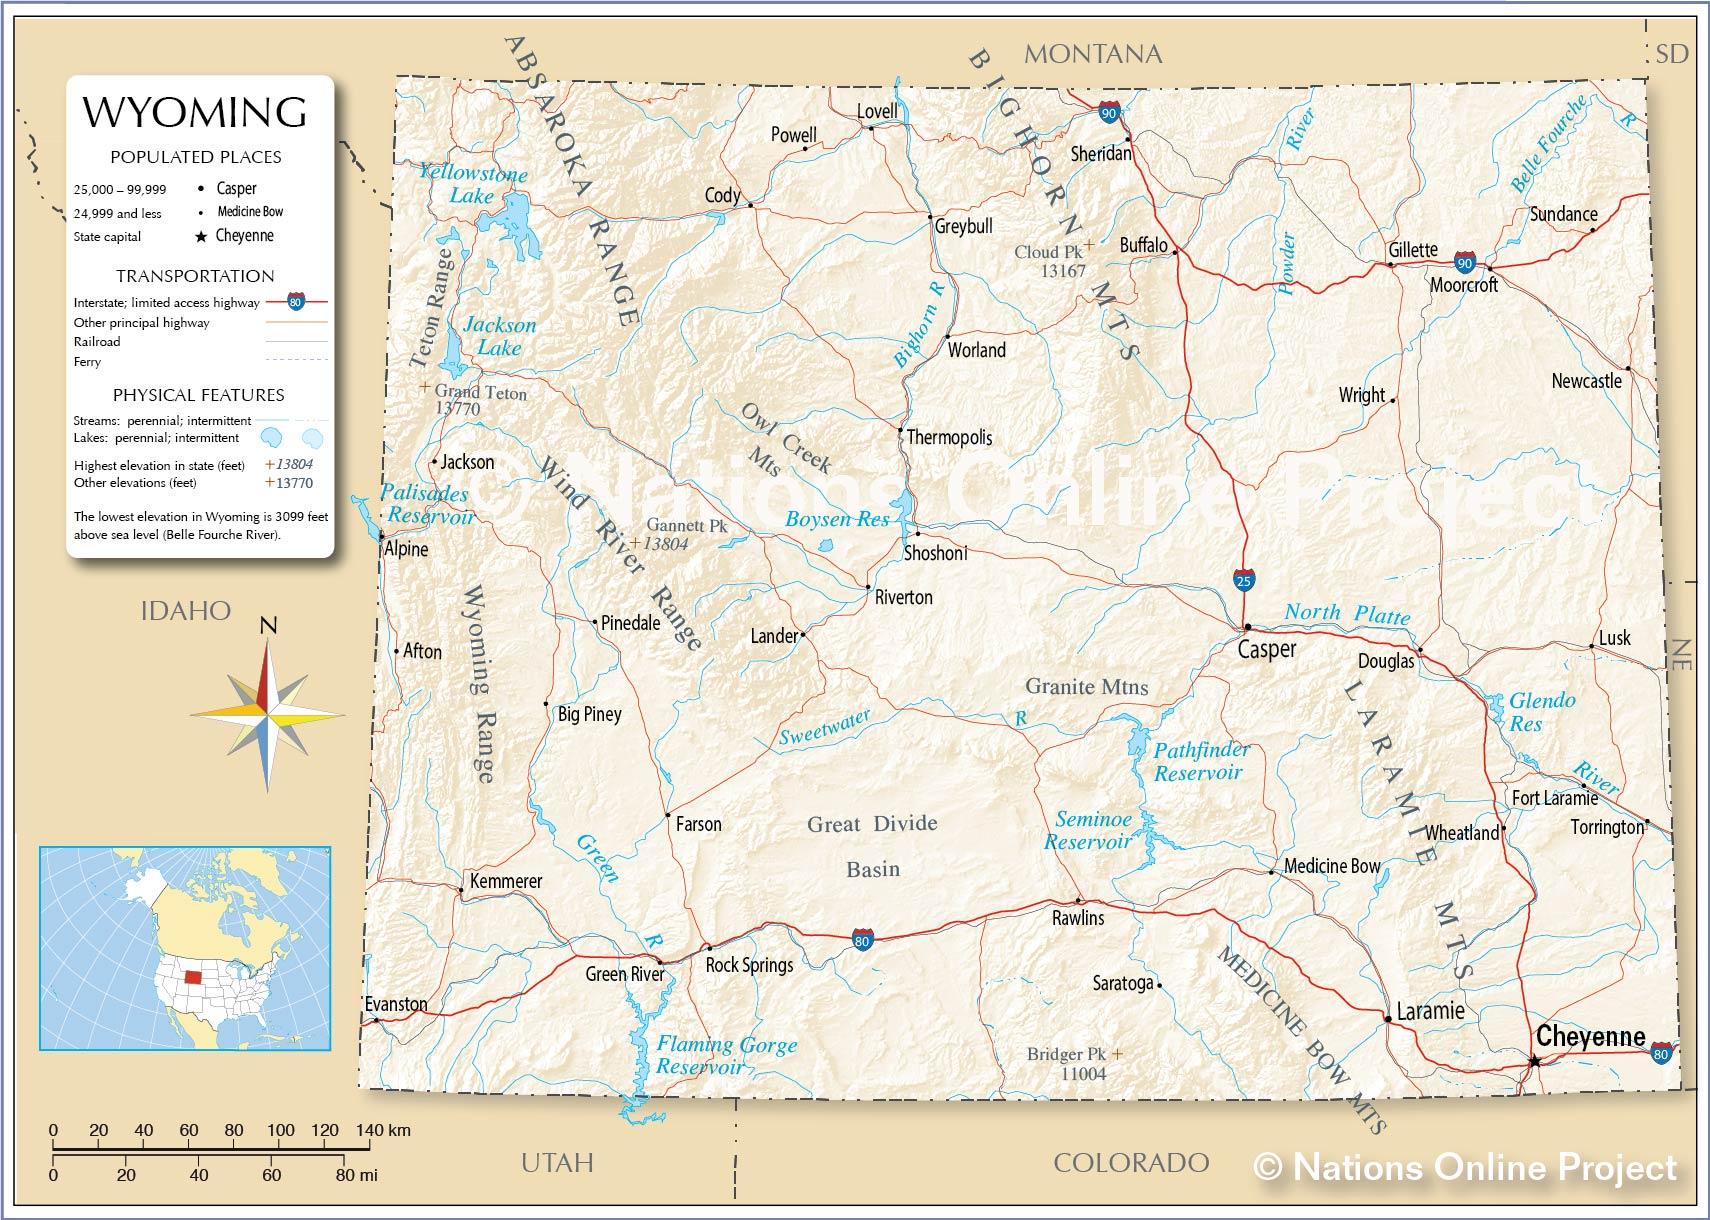 Reference Map Of Wyoming USA Nations Online Project - Map of me